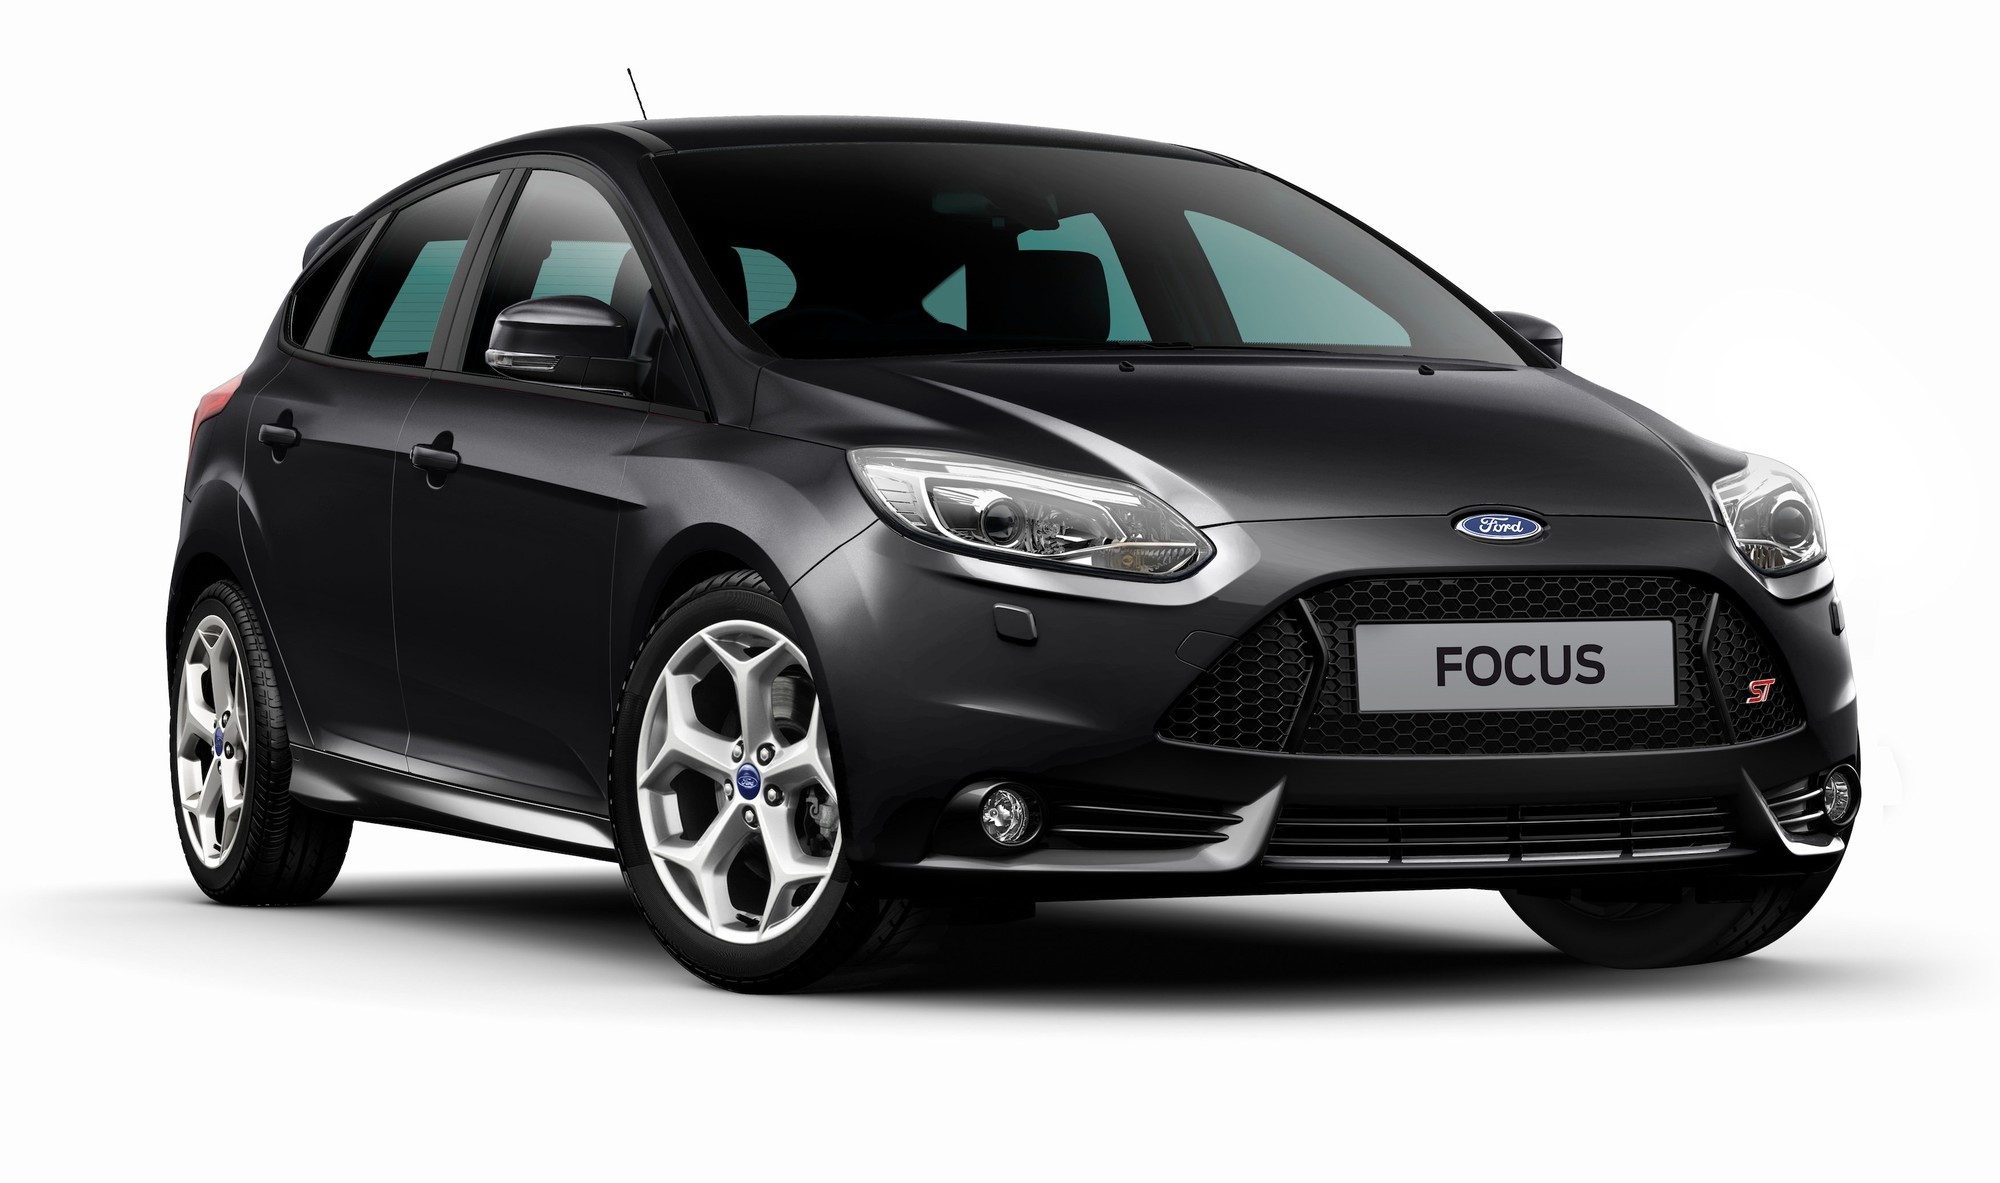 Chiptuning Ford Focus : chiptuning ford focus iii 1 6 tdci 95 pk 87 gram co2 ~ Jslefanu.com Haus und Dekorationen